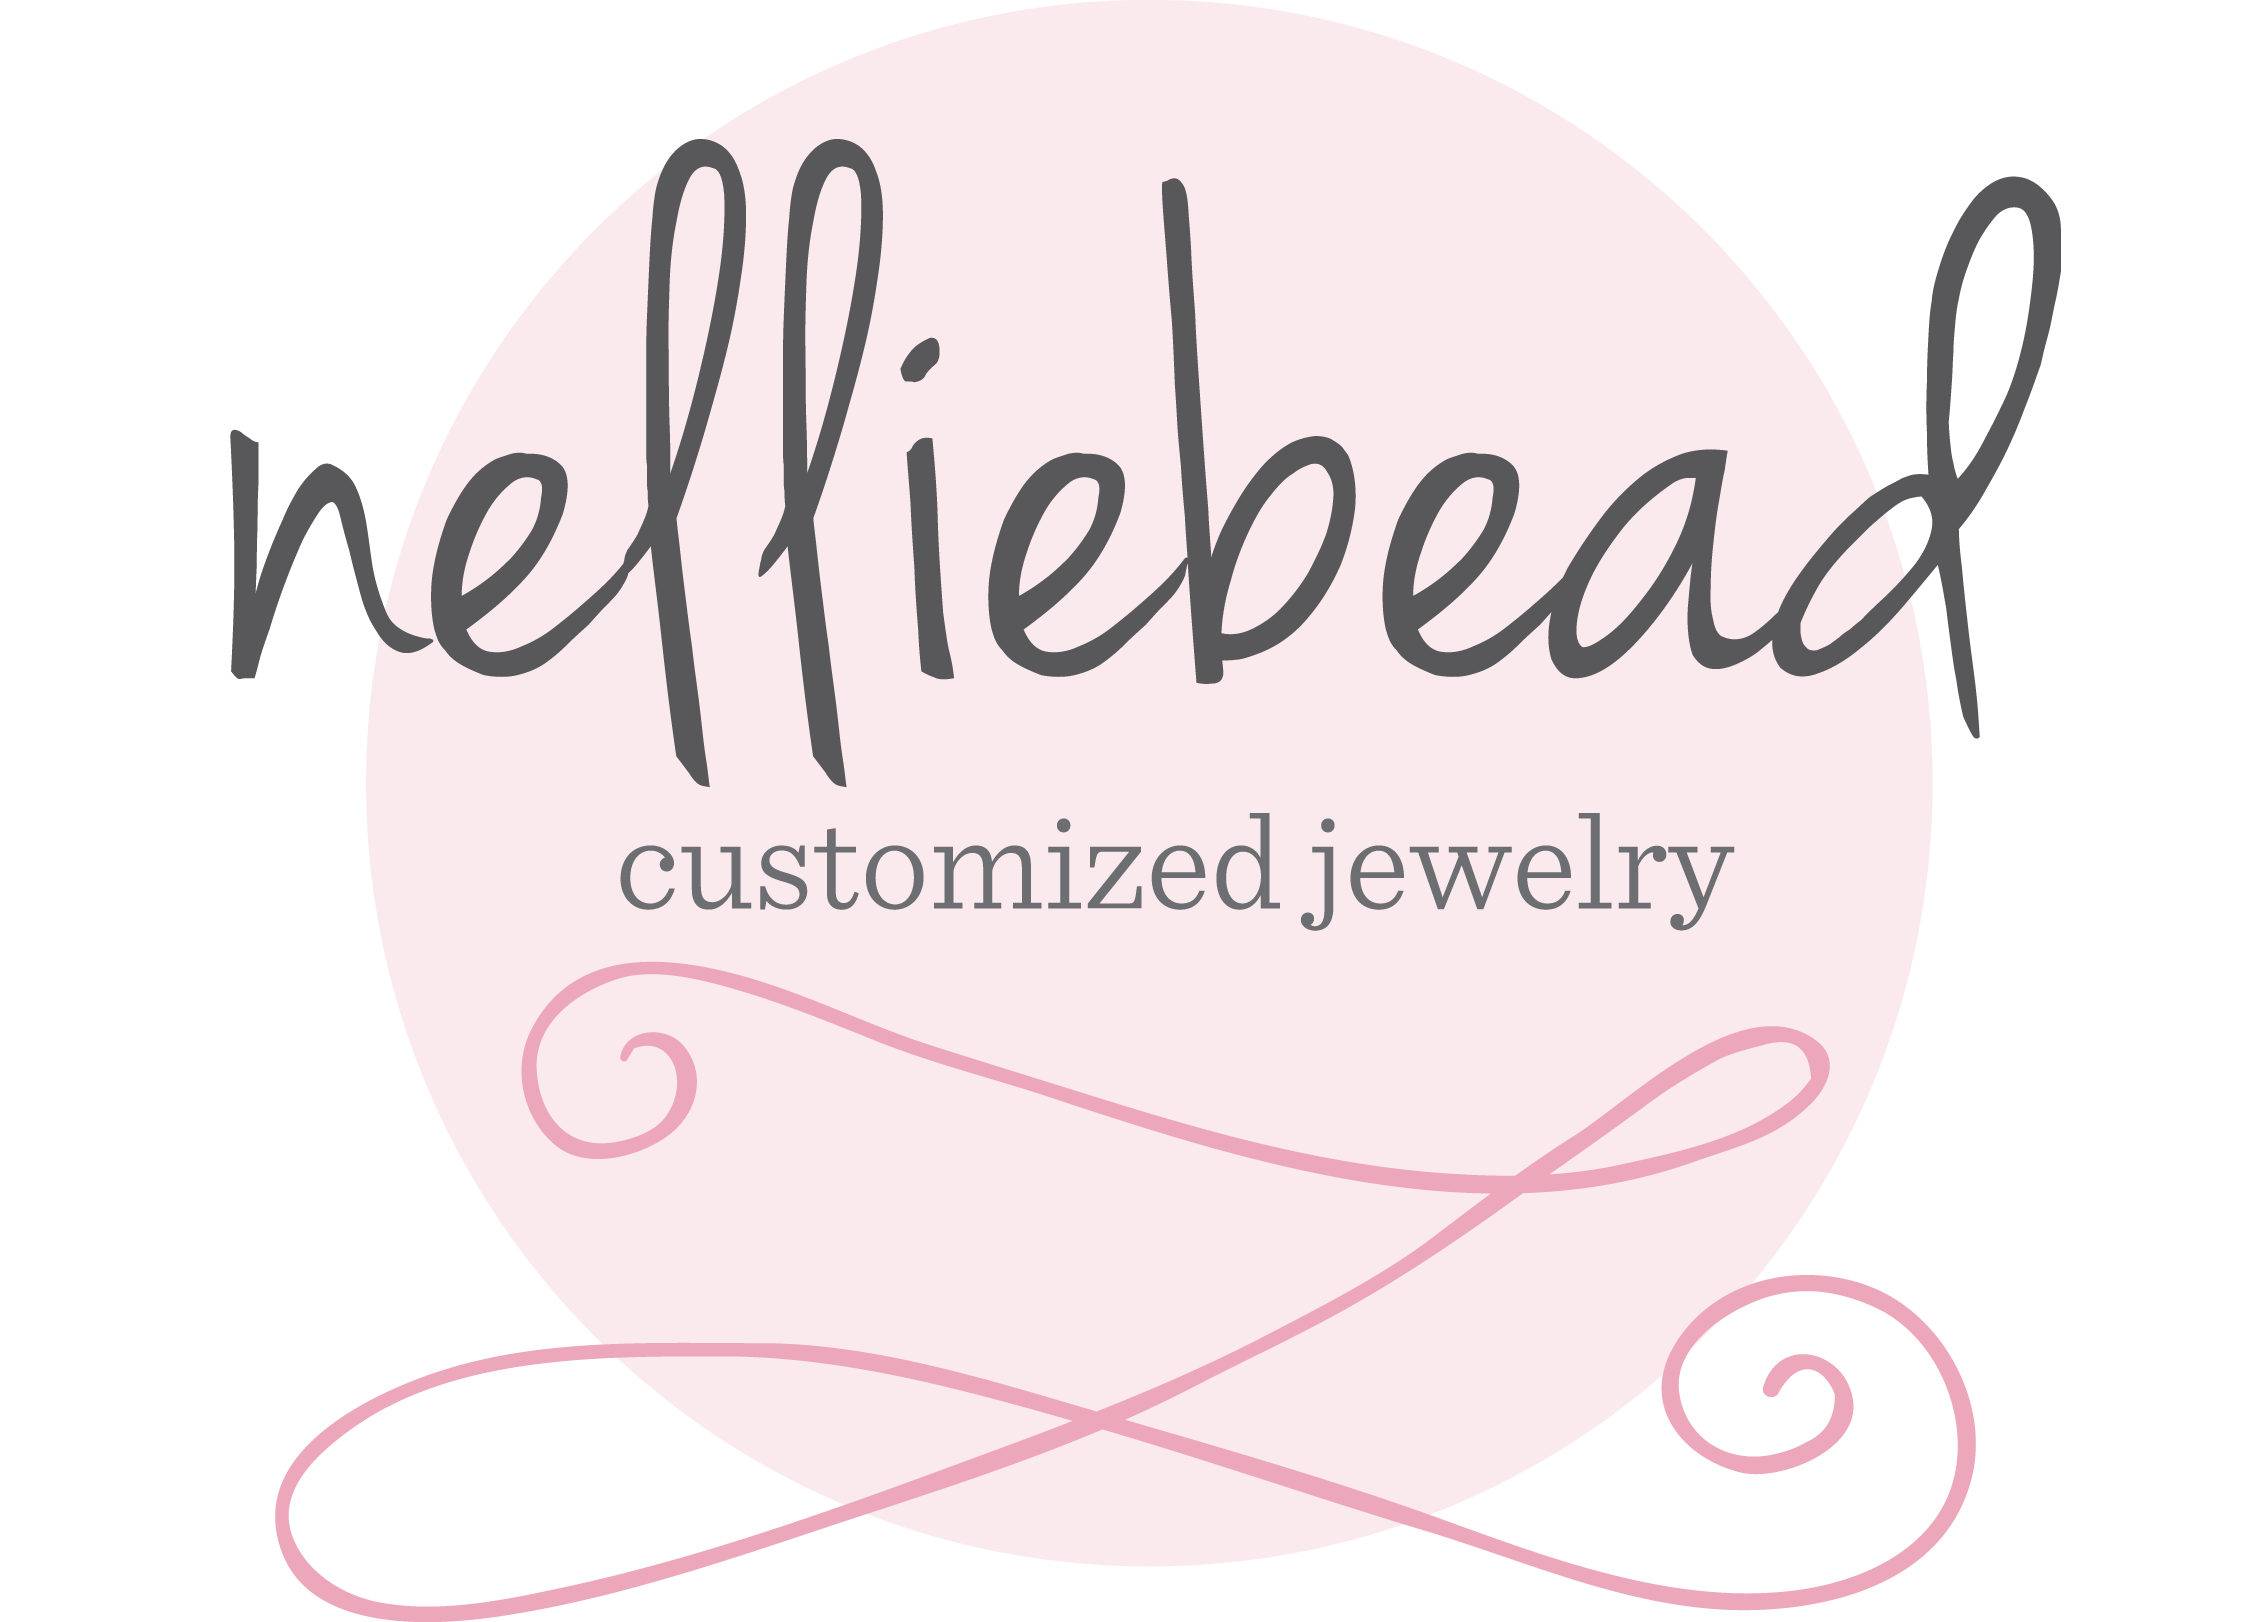 Nelliebead_logo_concepts_FINAL.png